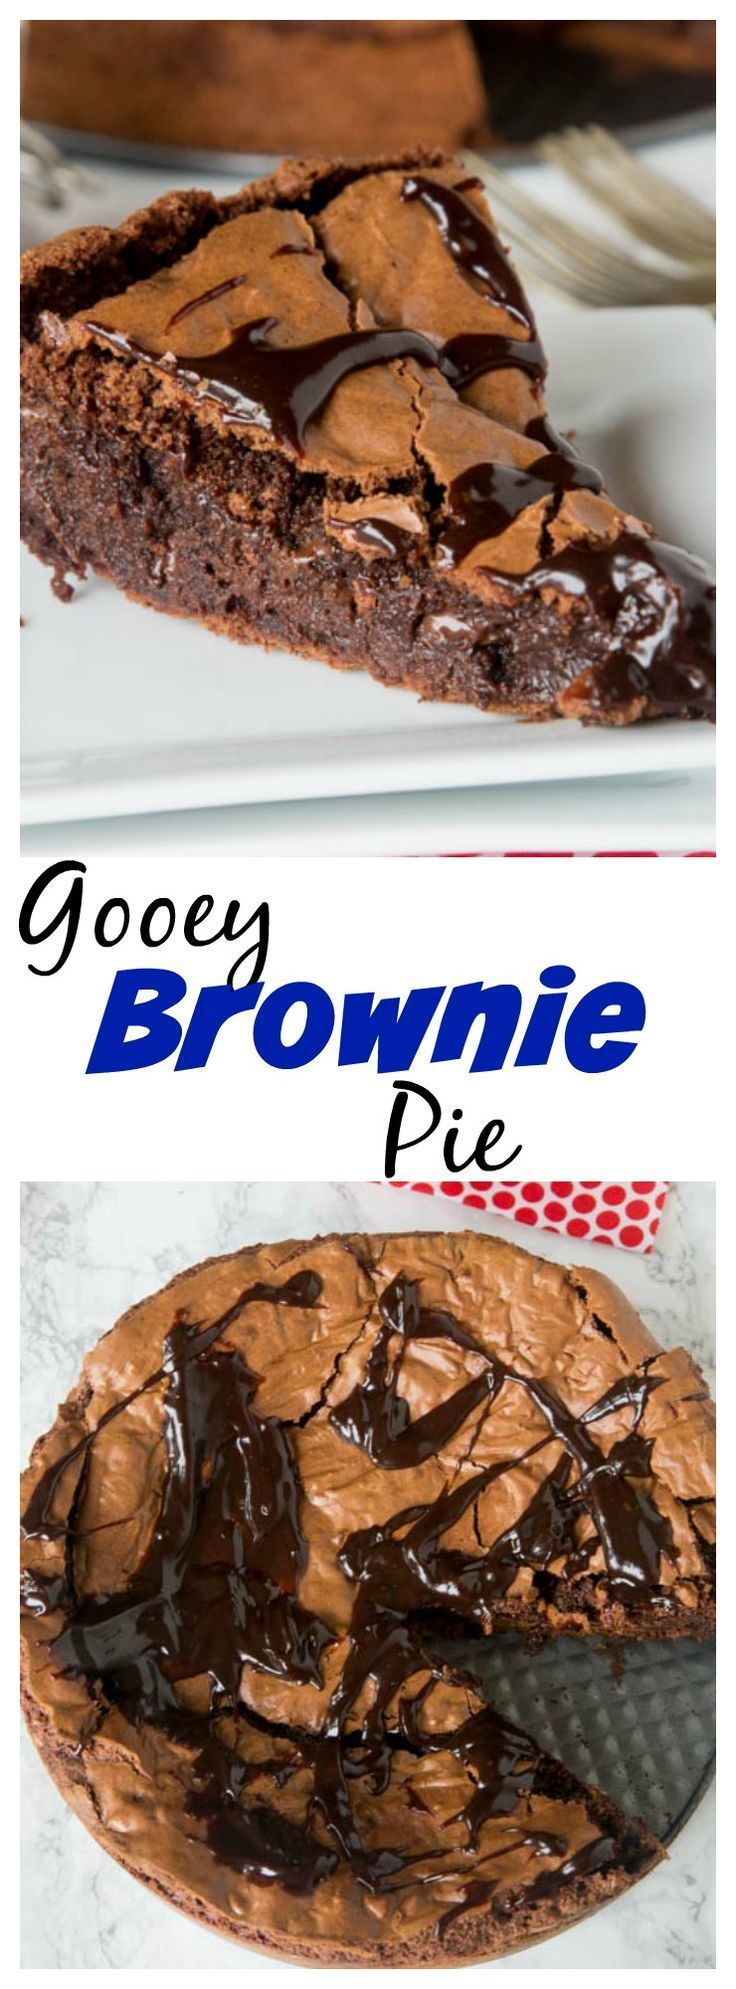 Gooey Brownie Pie – a gooey chocolate brownie with a crackly top baked into a pie and topped w